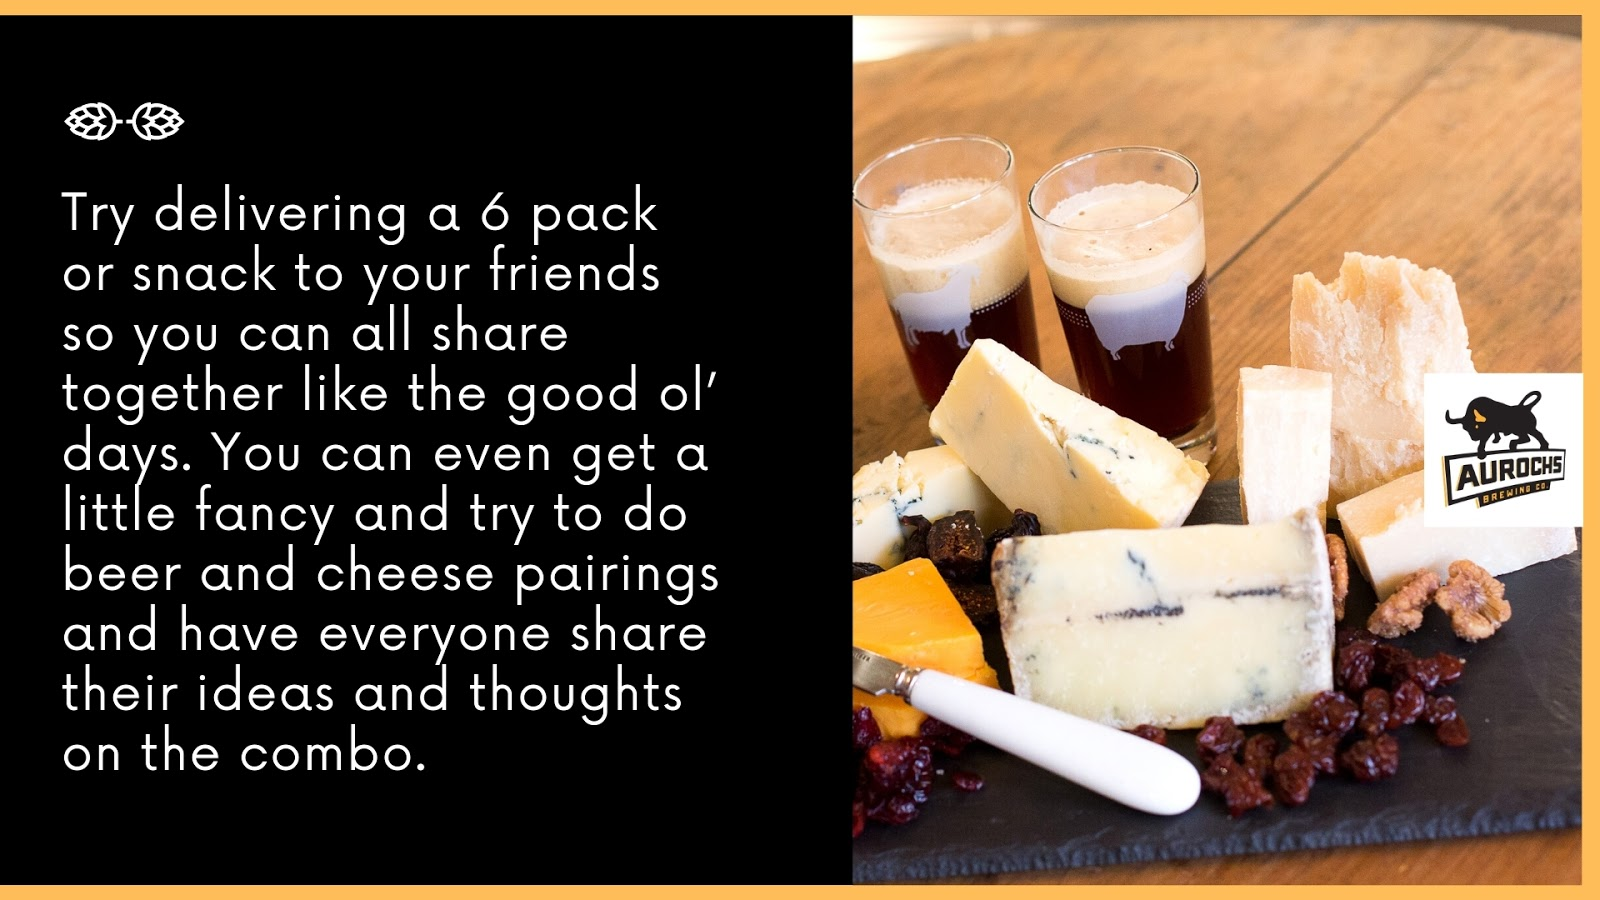 Try delivering a 6 pack or snack to your friends so you can all share together like the good ol' days